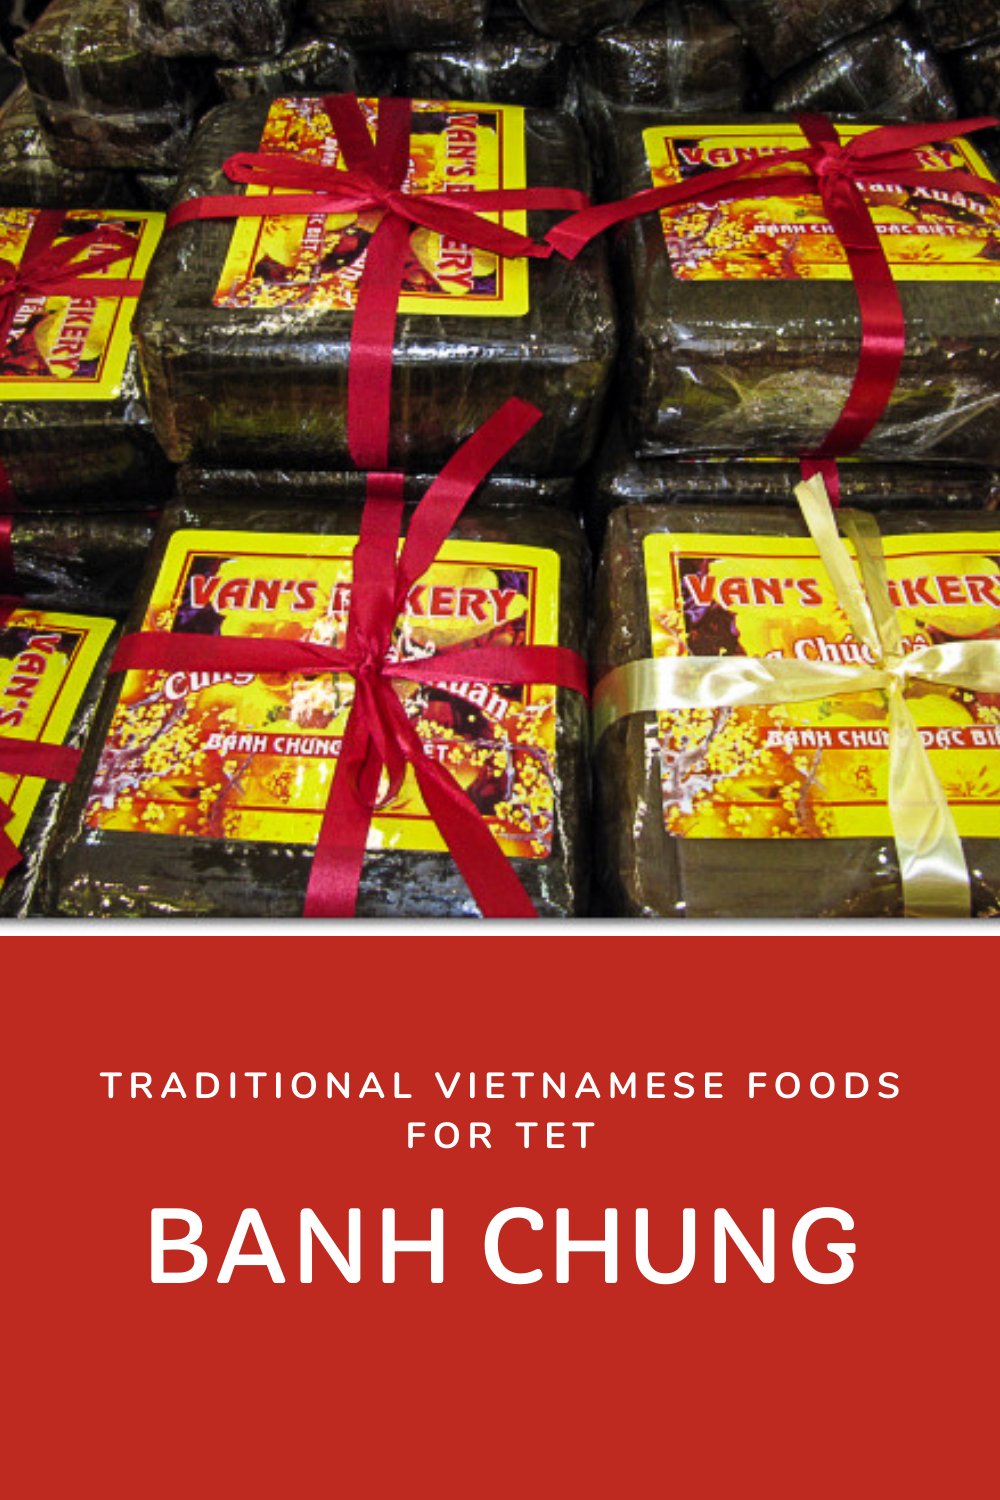 Lunar New Year, Banh Chung for Tet